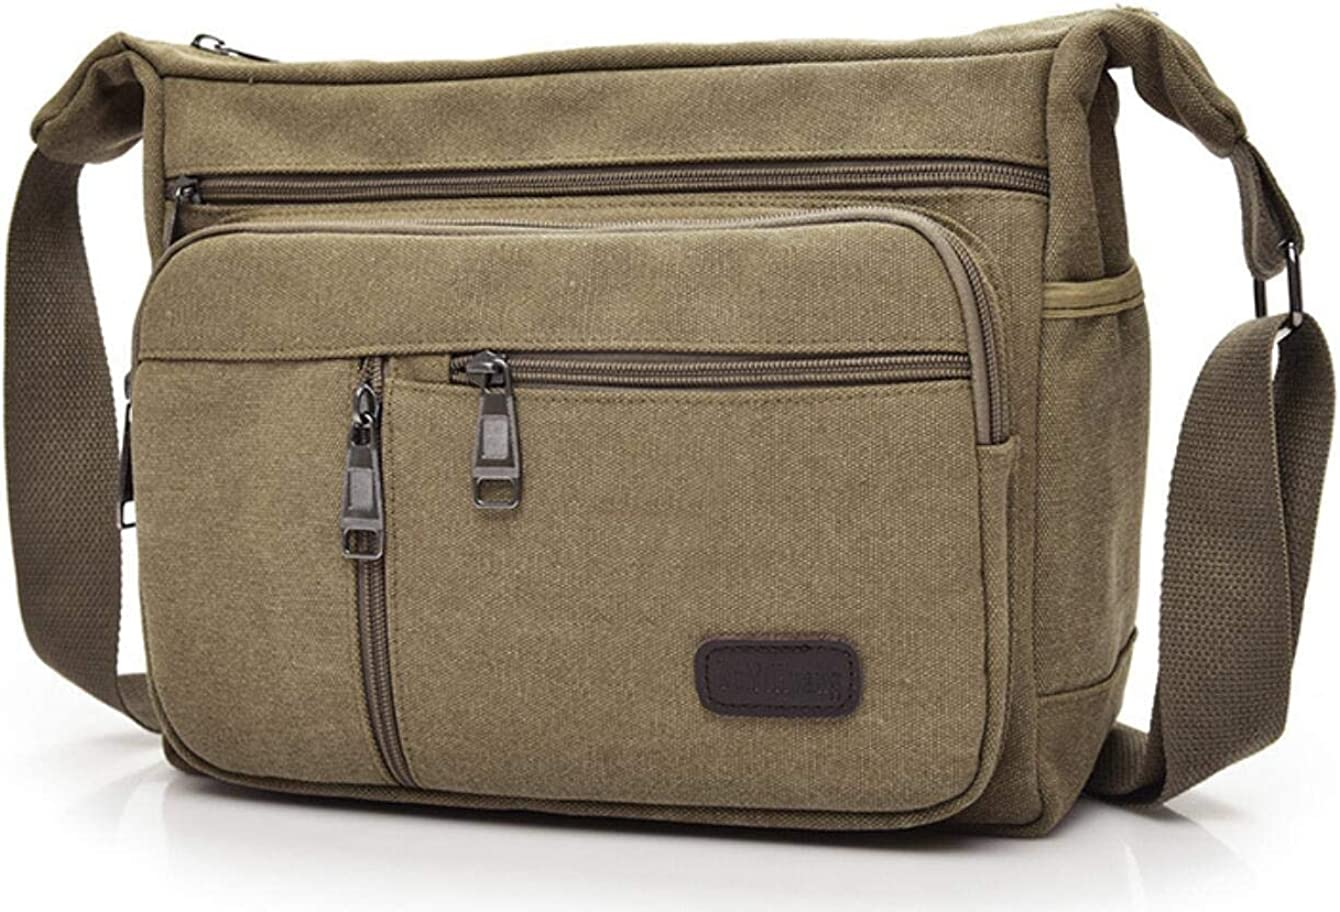 Joewilling Department store Men's Canvas Single Shoulder with Leisure Max 77% OFF Bag Mul